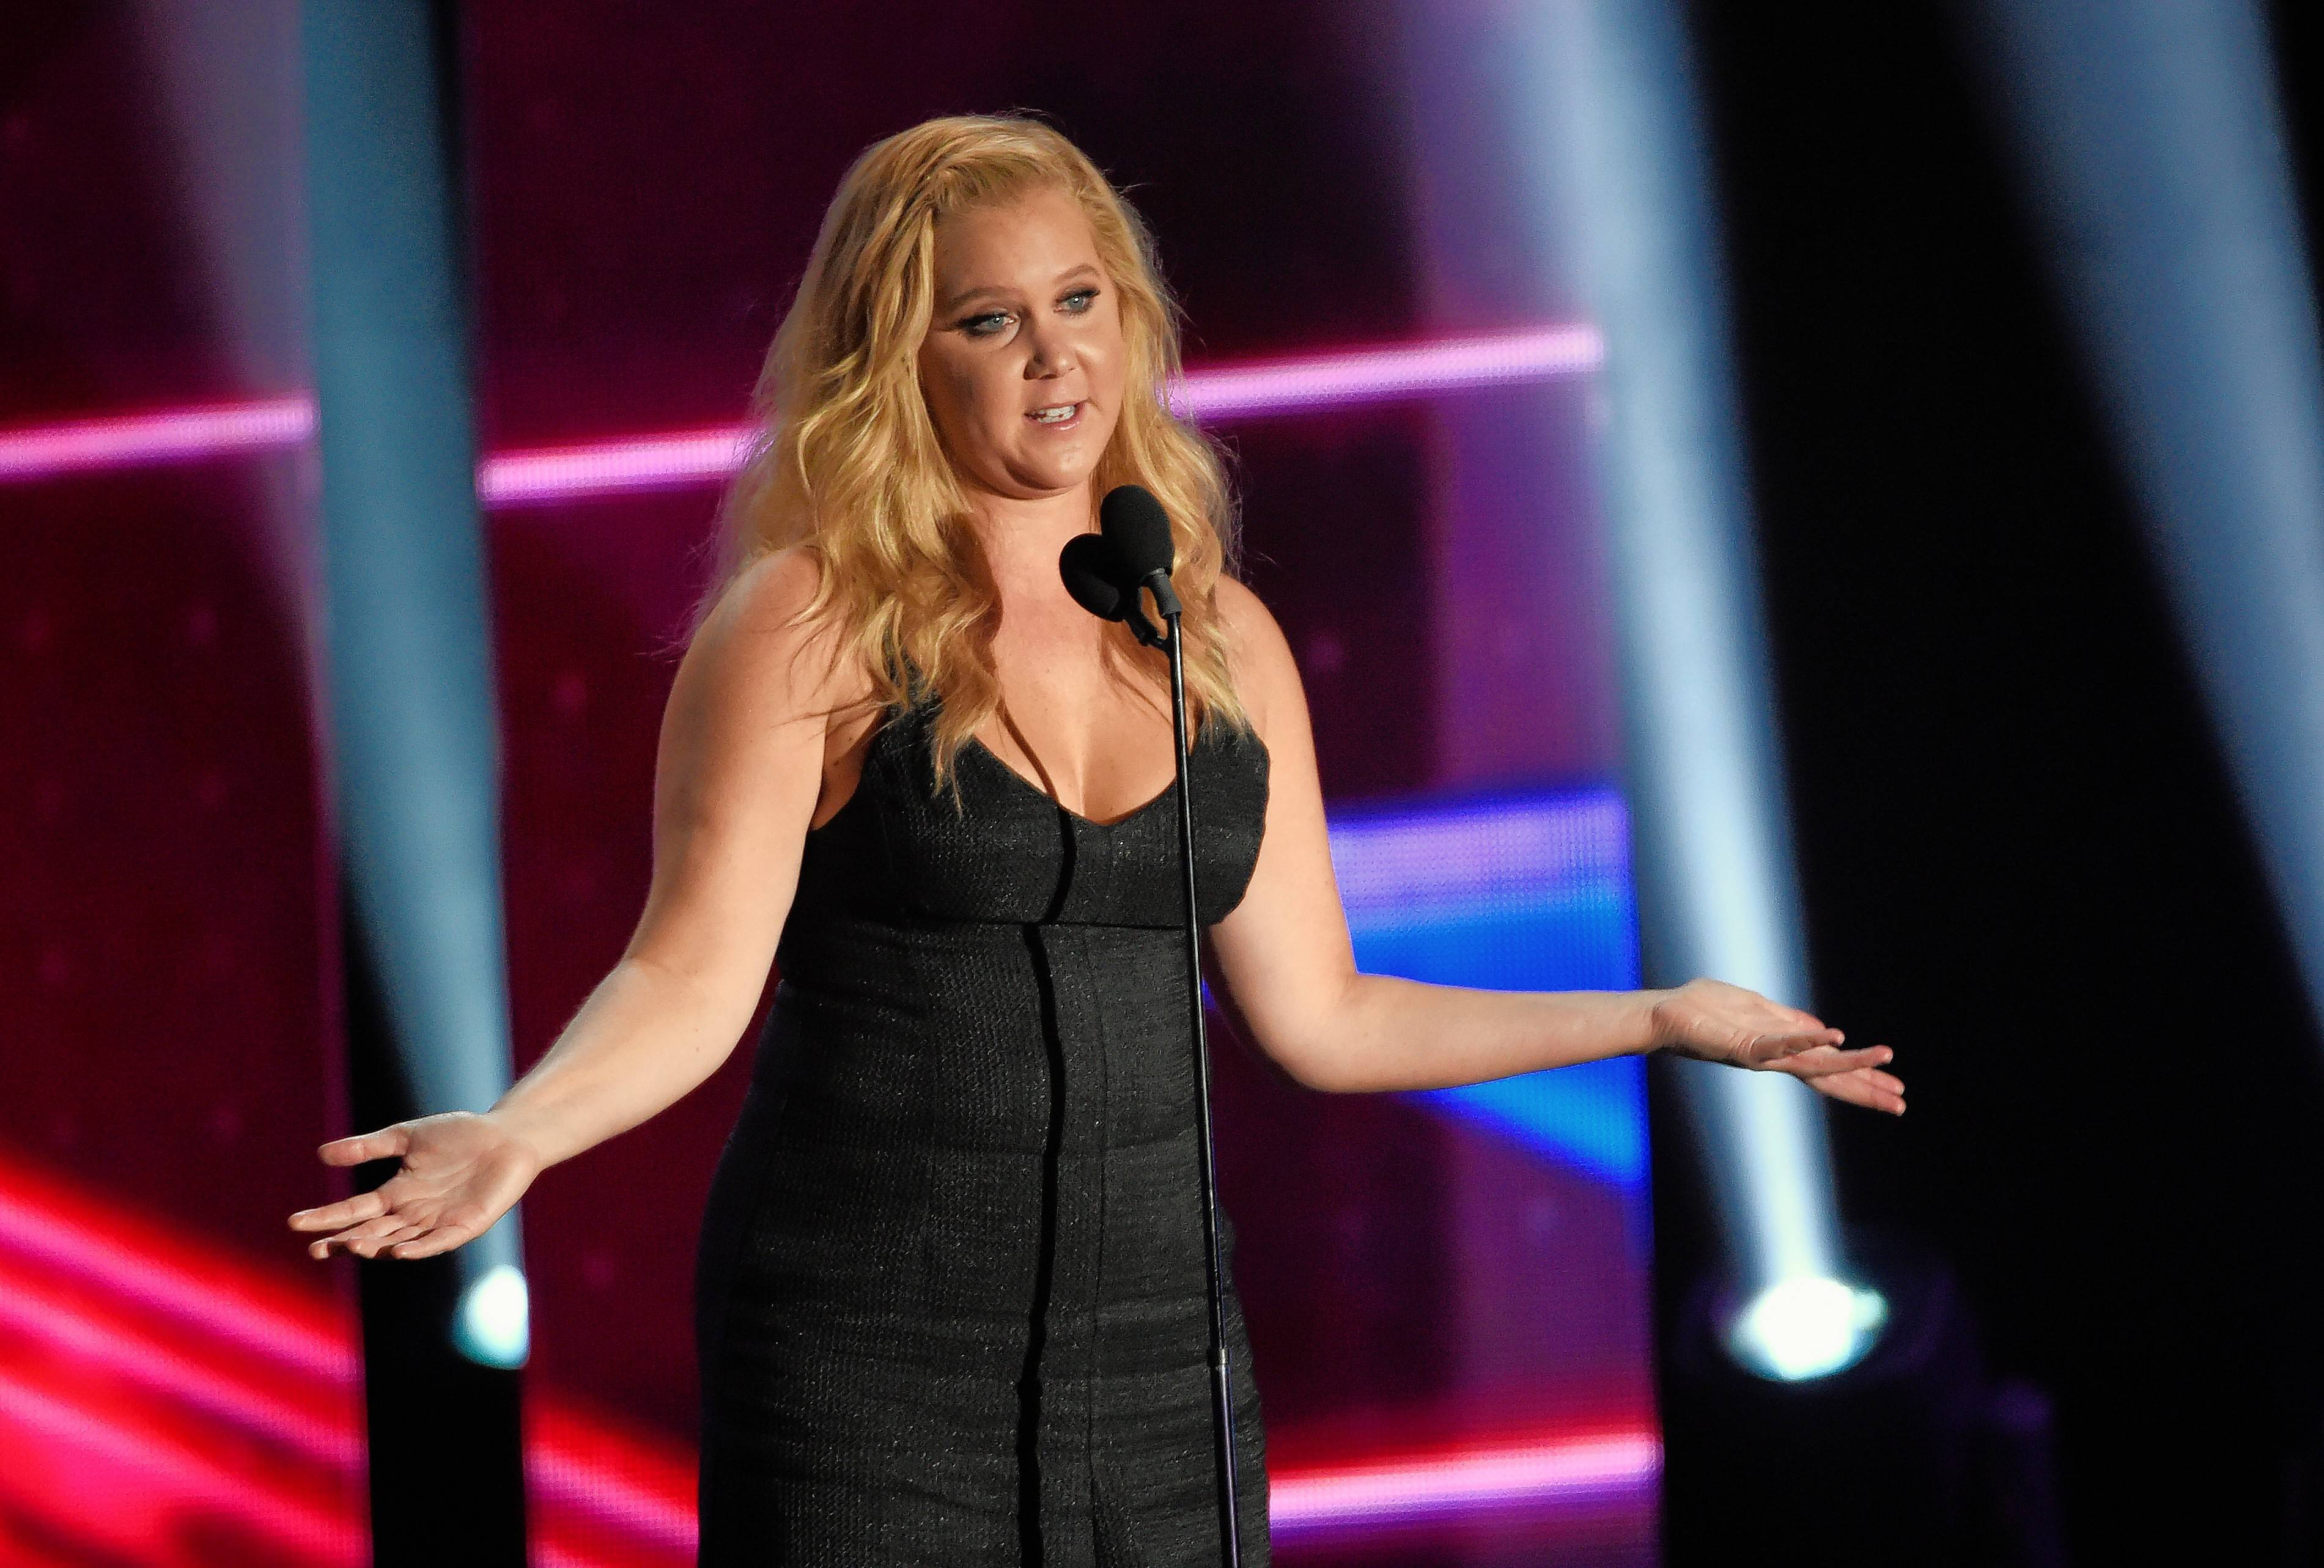 Amy Schumer performs standup comedy at the Chicago Theatre at 8 p.m. Tuesday and Wednesday, Dec. 18 and 19.